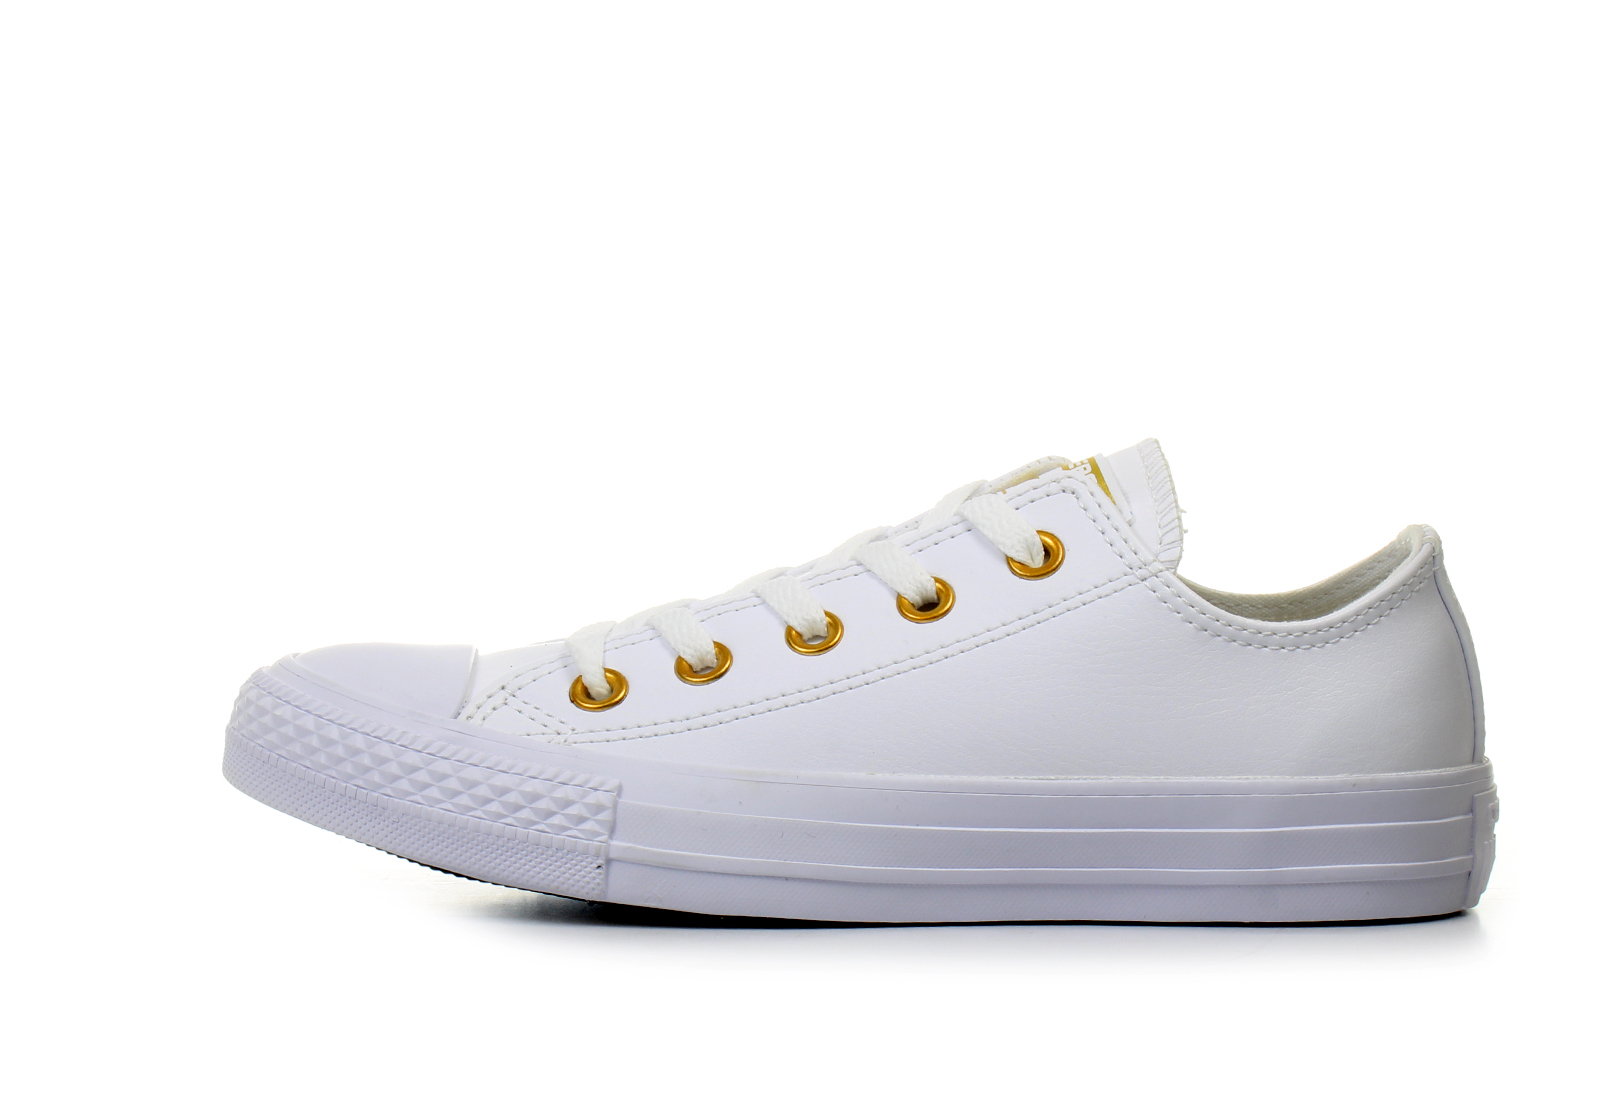 Converse Tornacipő - Chuck Taylor All Star Specialty Leather Ox ... d92522fbcd